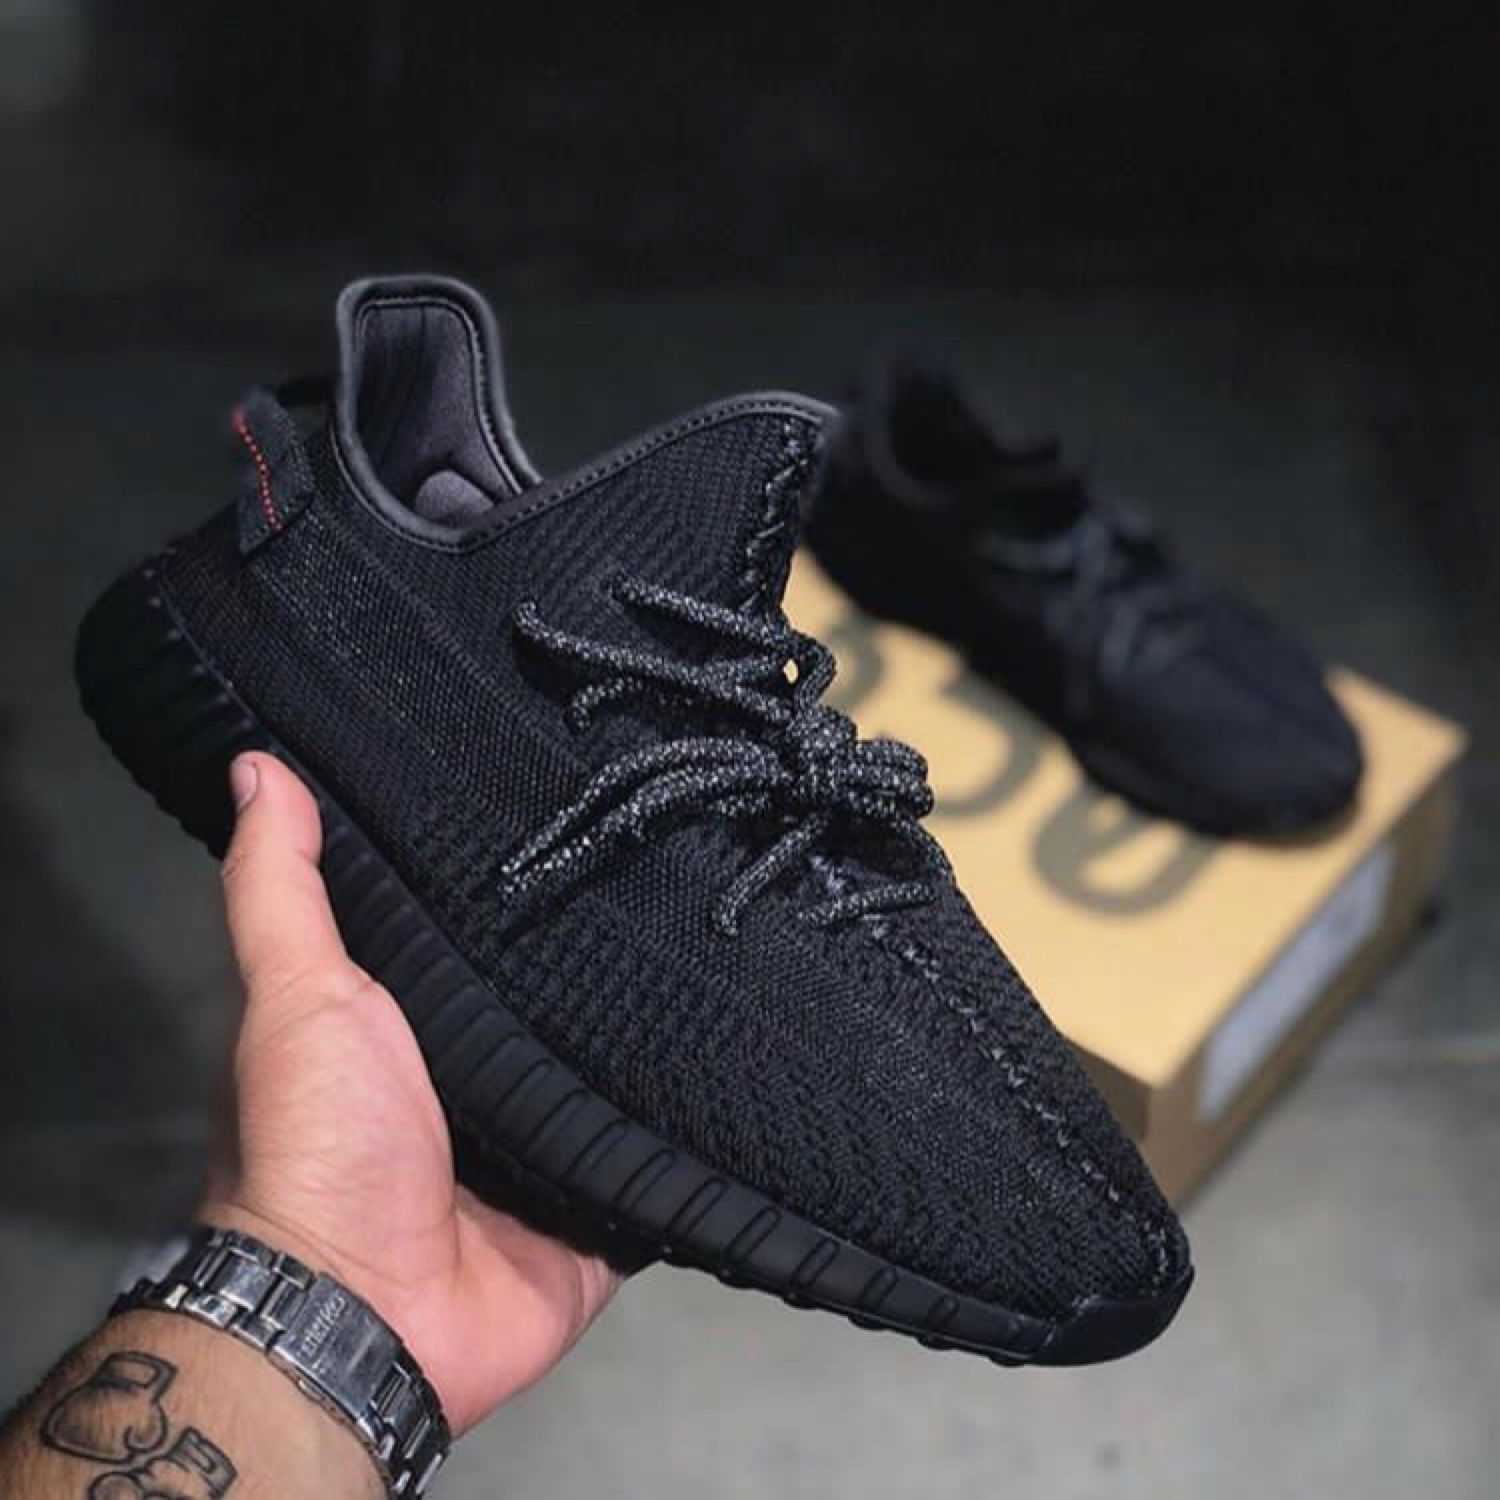 competitive price 66a7a 39276 Adidas Yeezy Boost 350 V2 Static Black